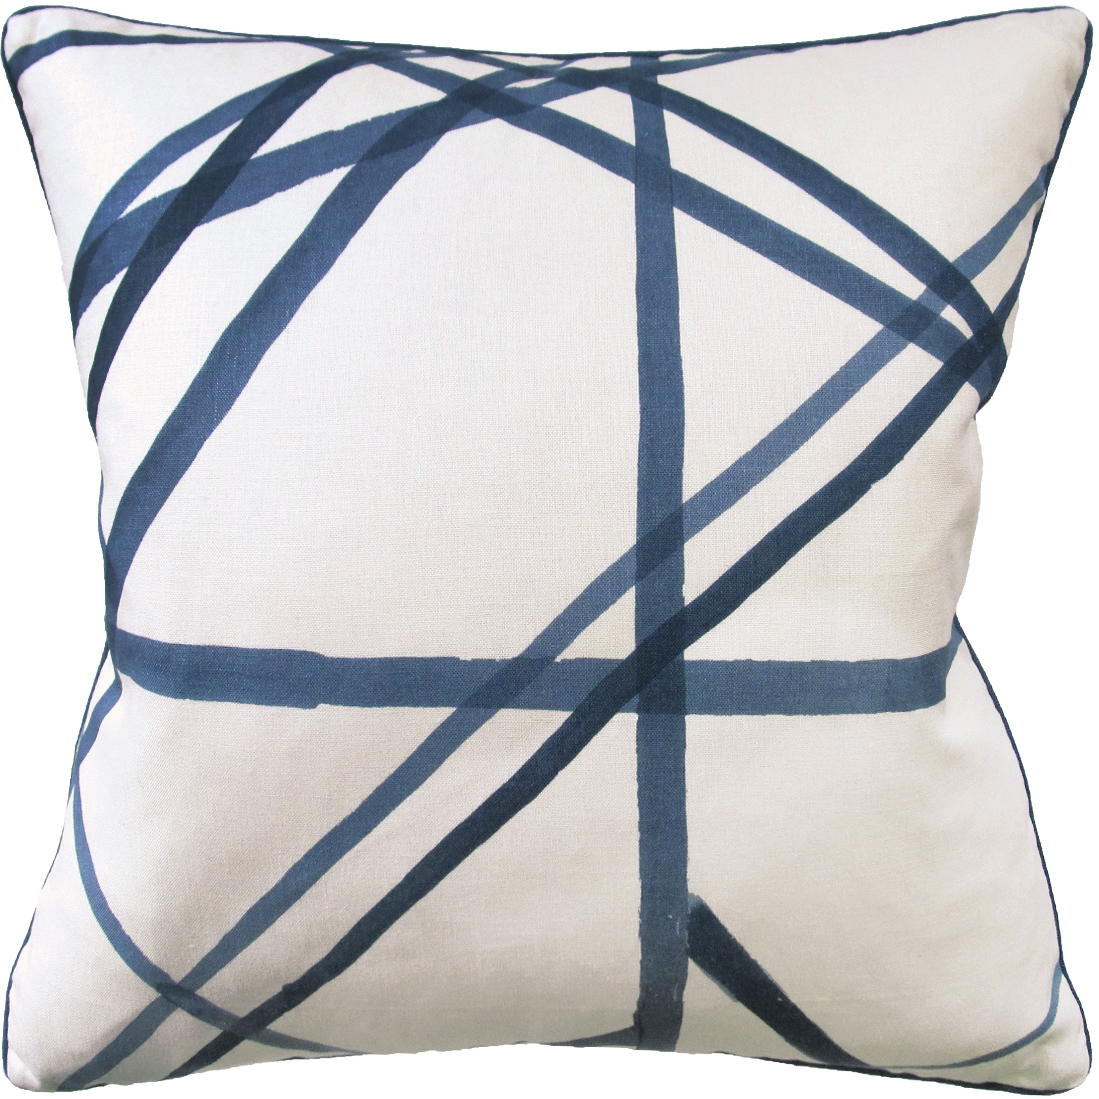 Channels Periwinkle Decorative Pillow